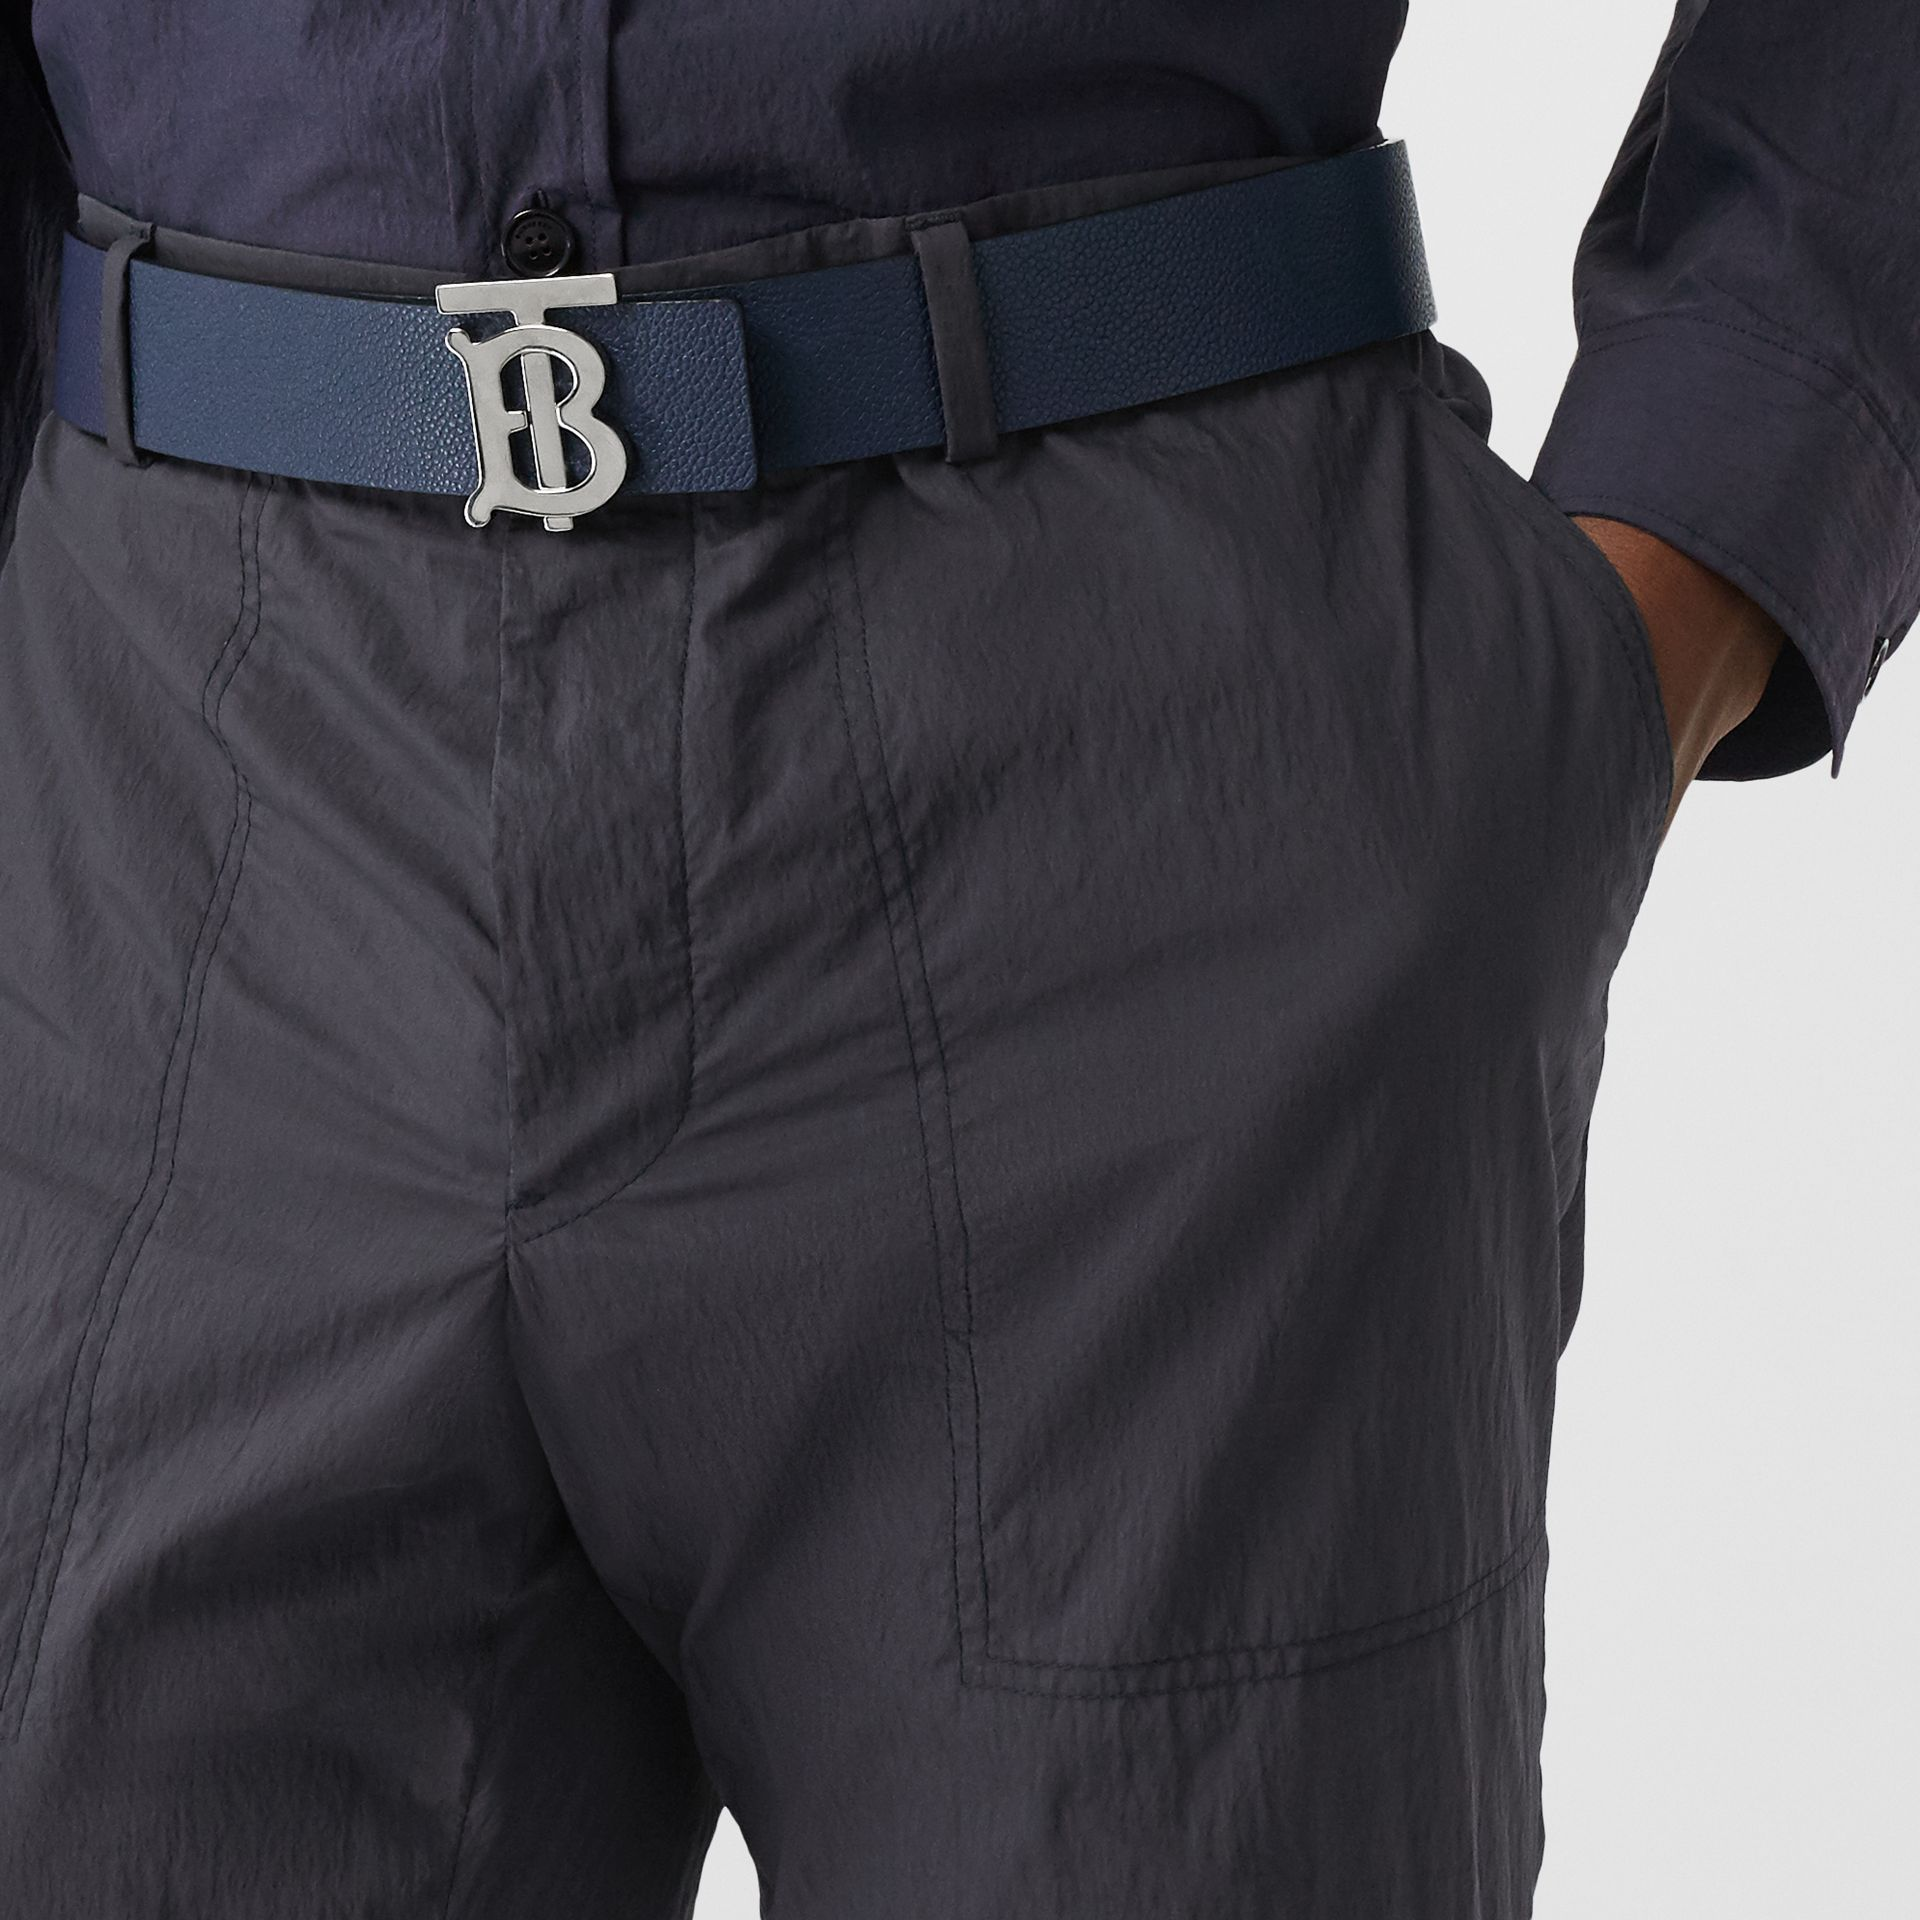 Classic Fit Cotton Blend Tailored Trousers in Navy - Men | Burberry Australia - gallery image 1